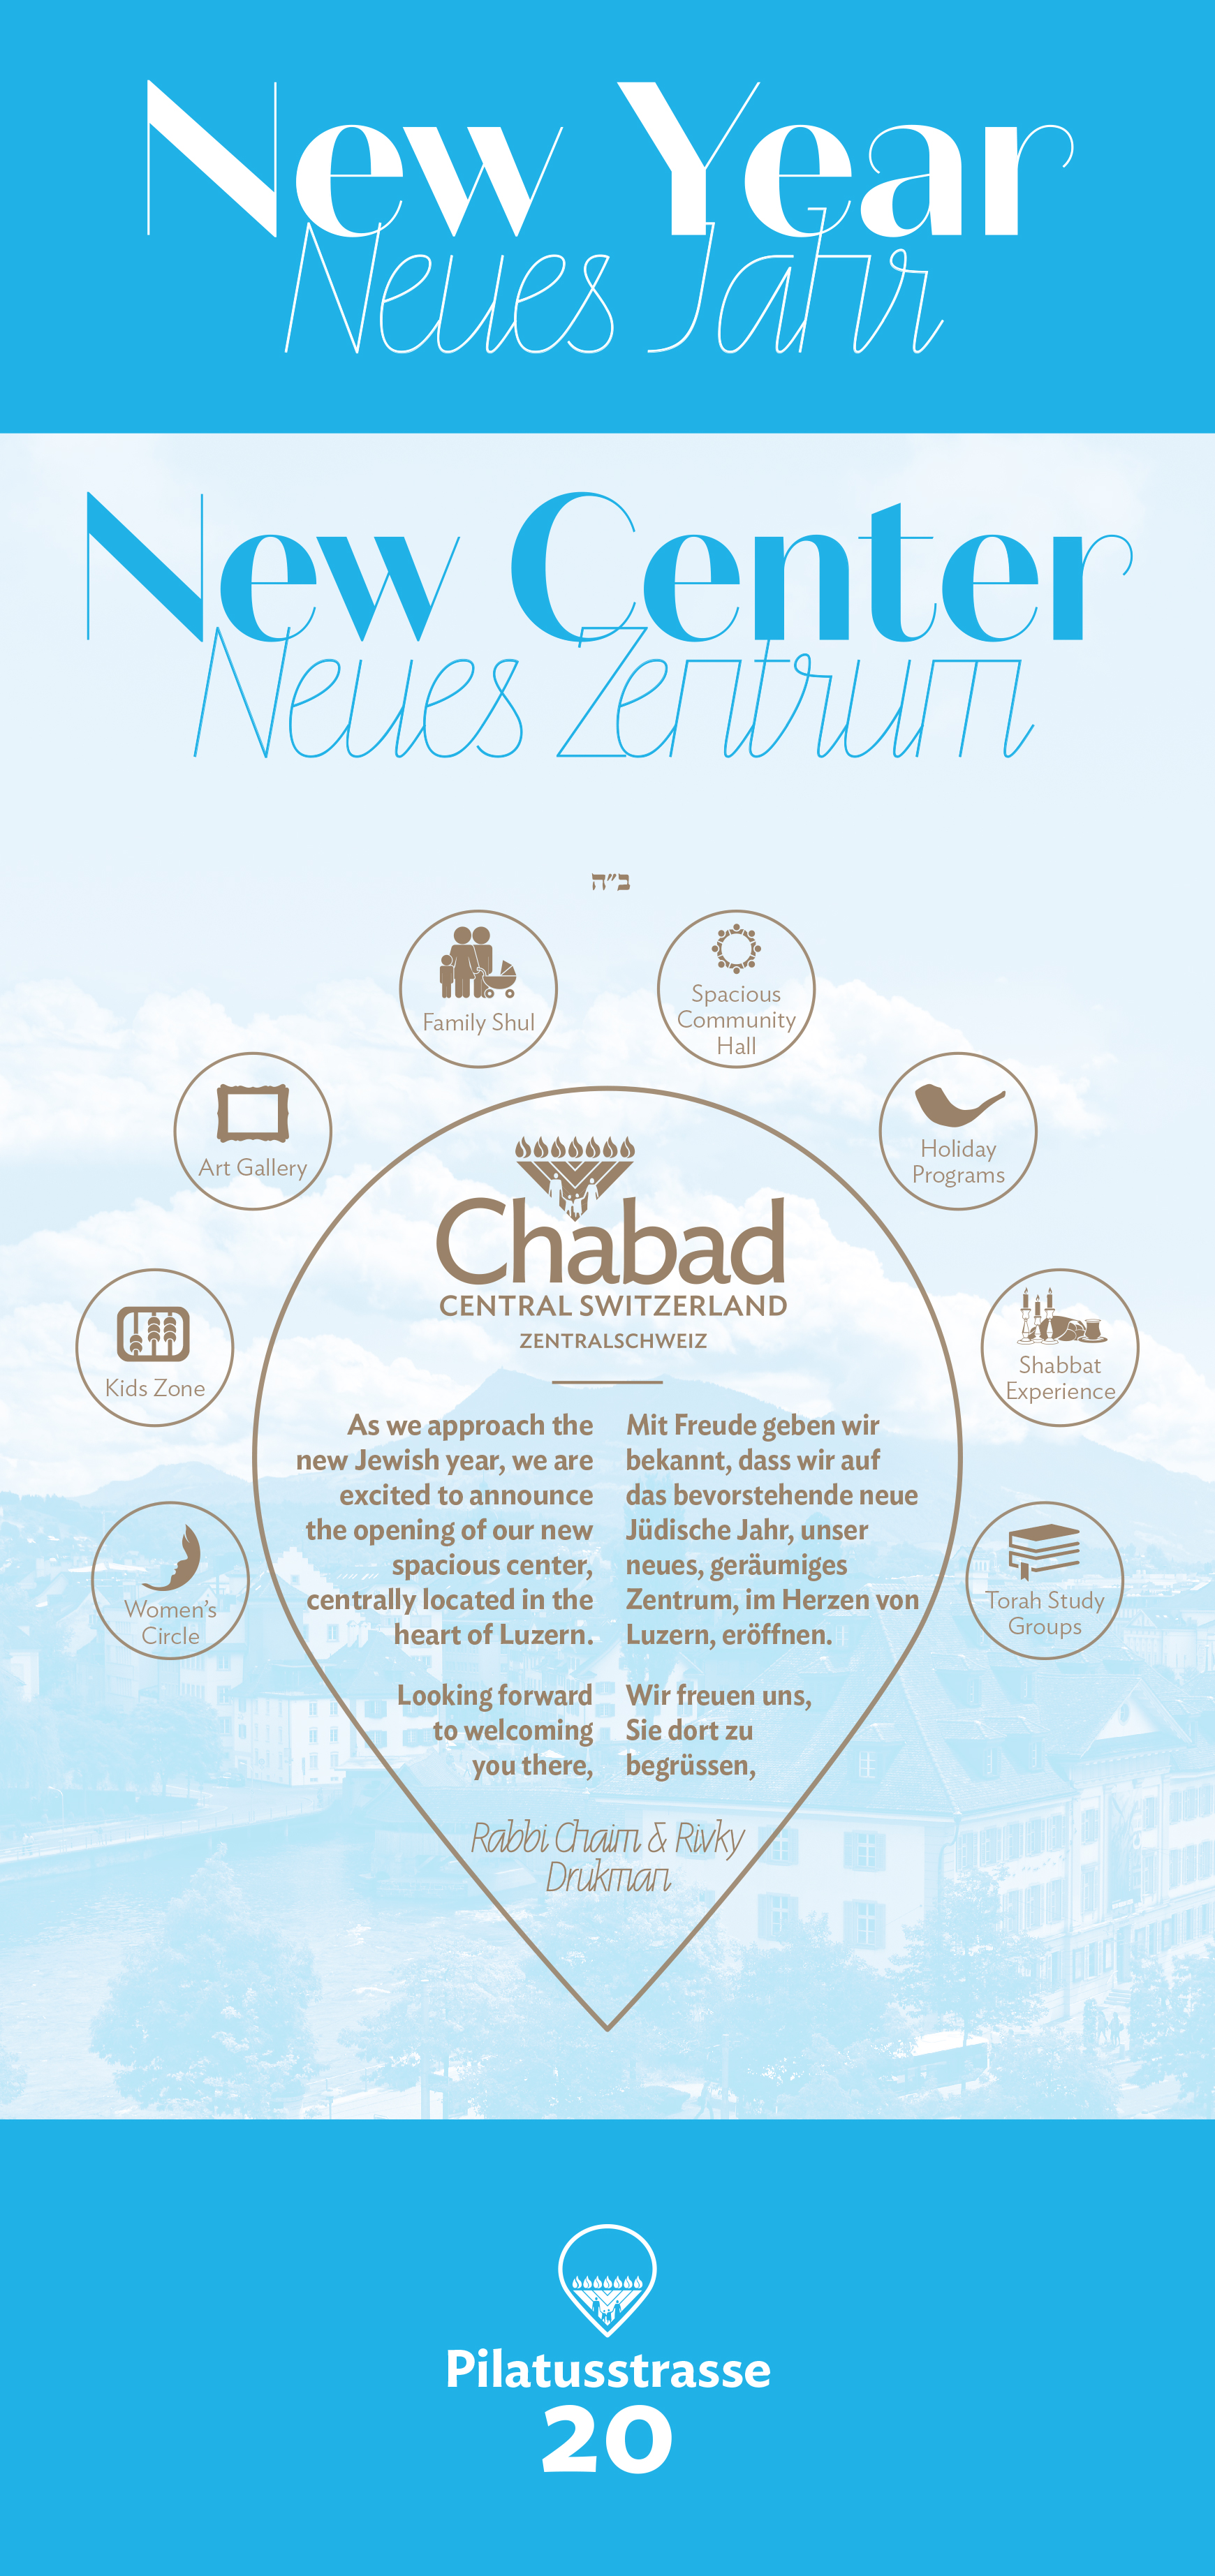 Chabad-Central-New-Location-jpeg (1).jpg